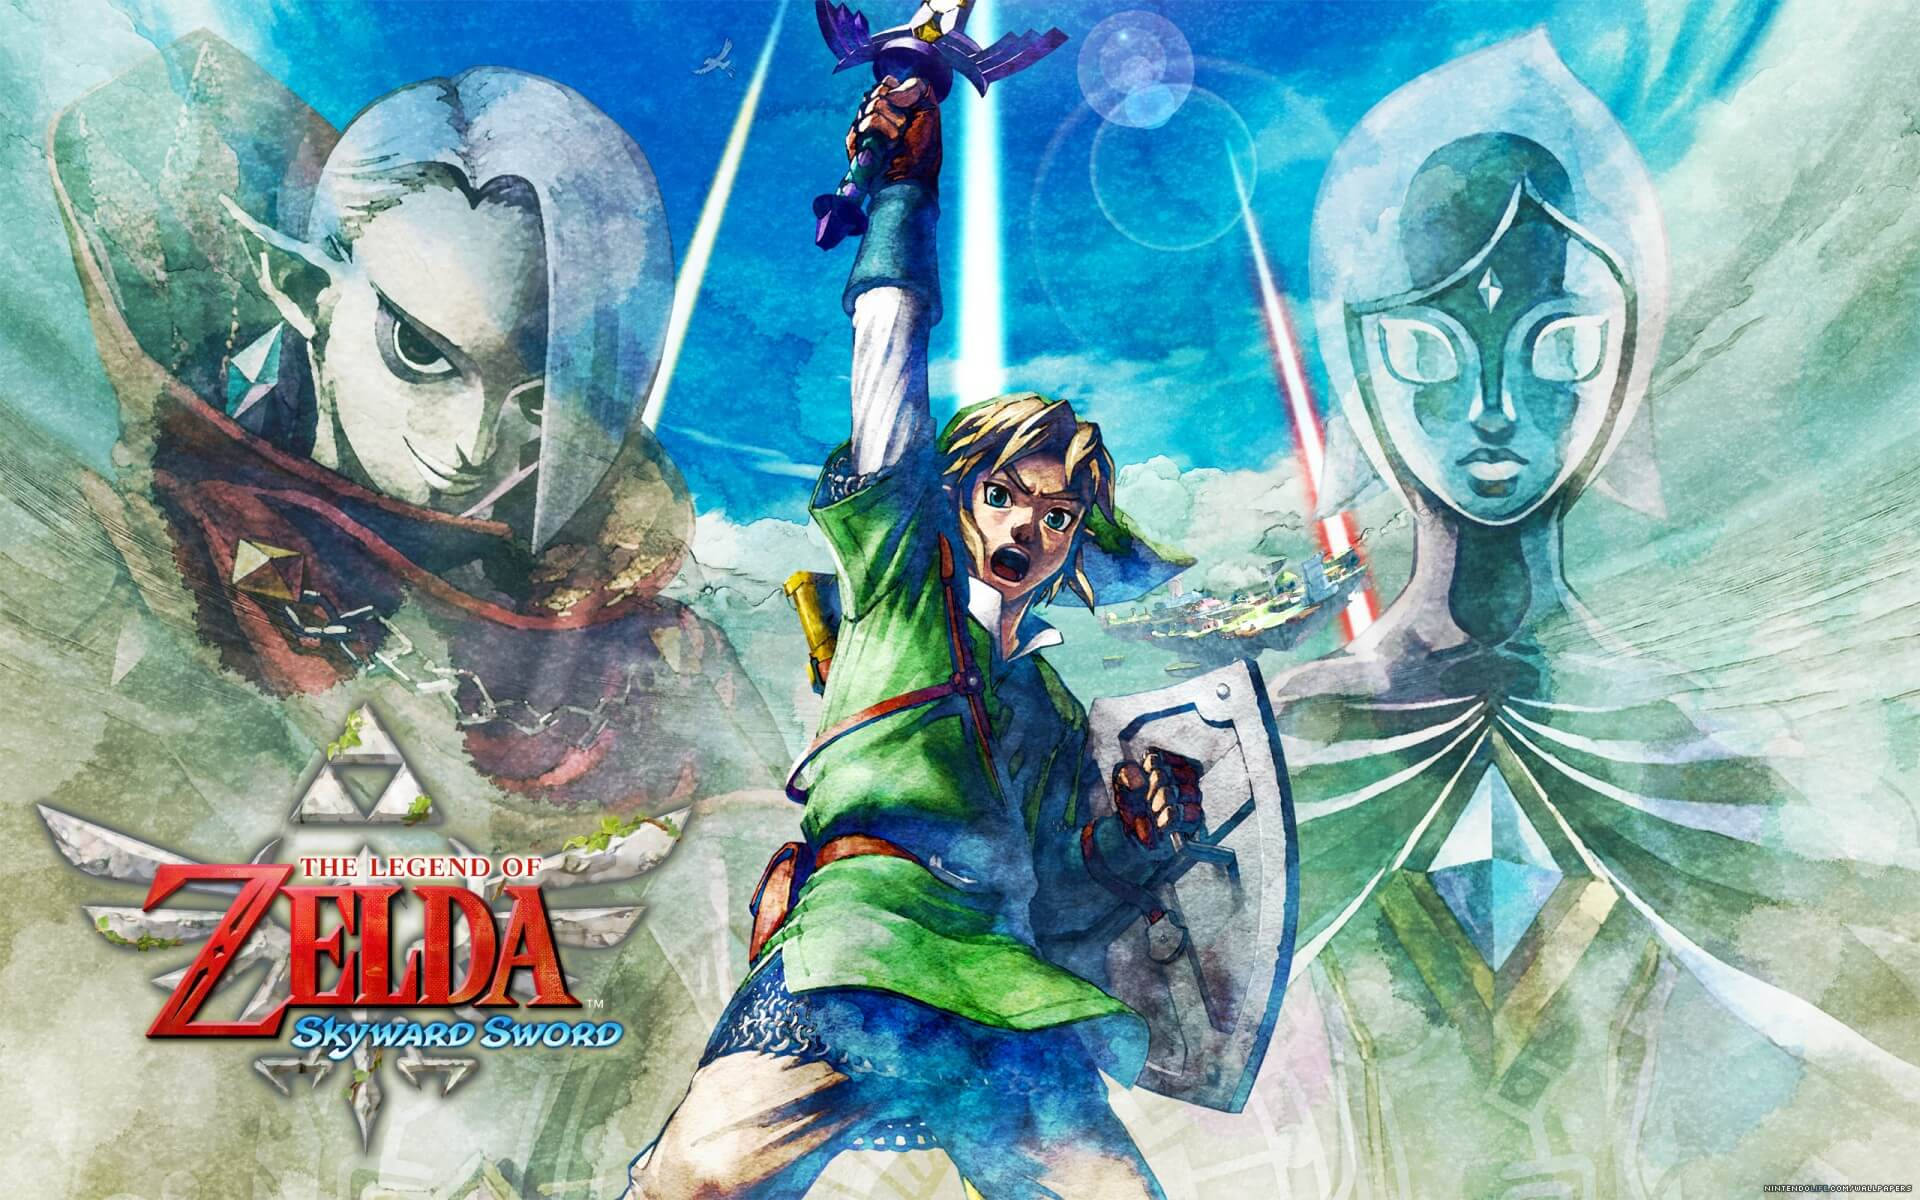 The Legend Of Zelda Skyward Sword Wallpapers Hd